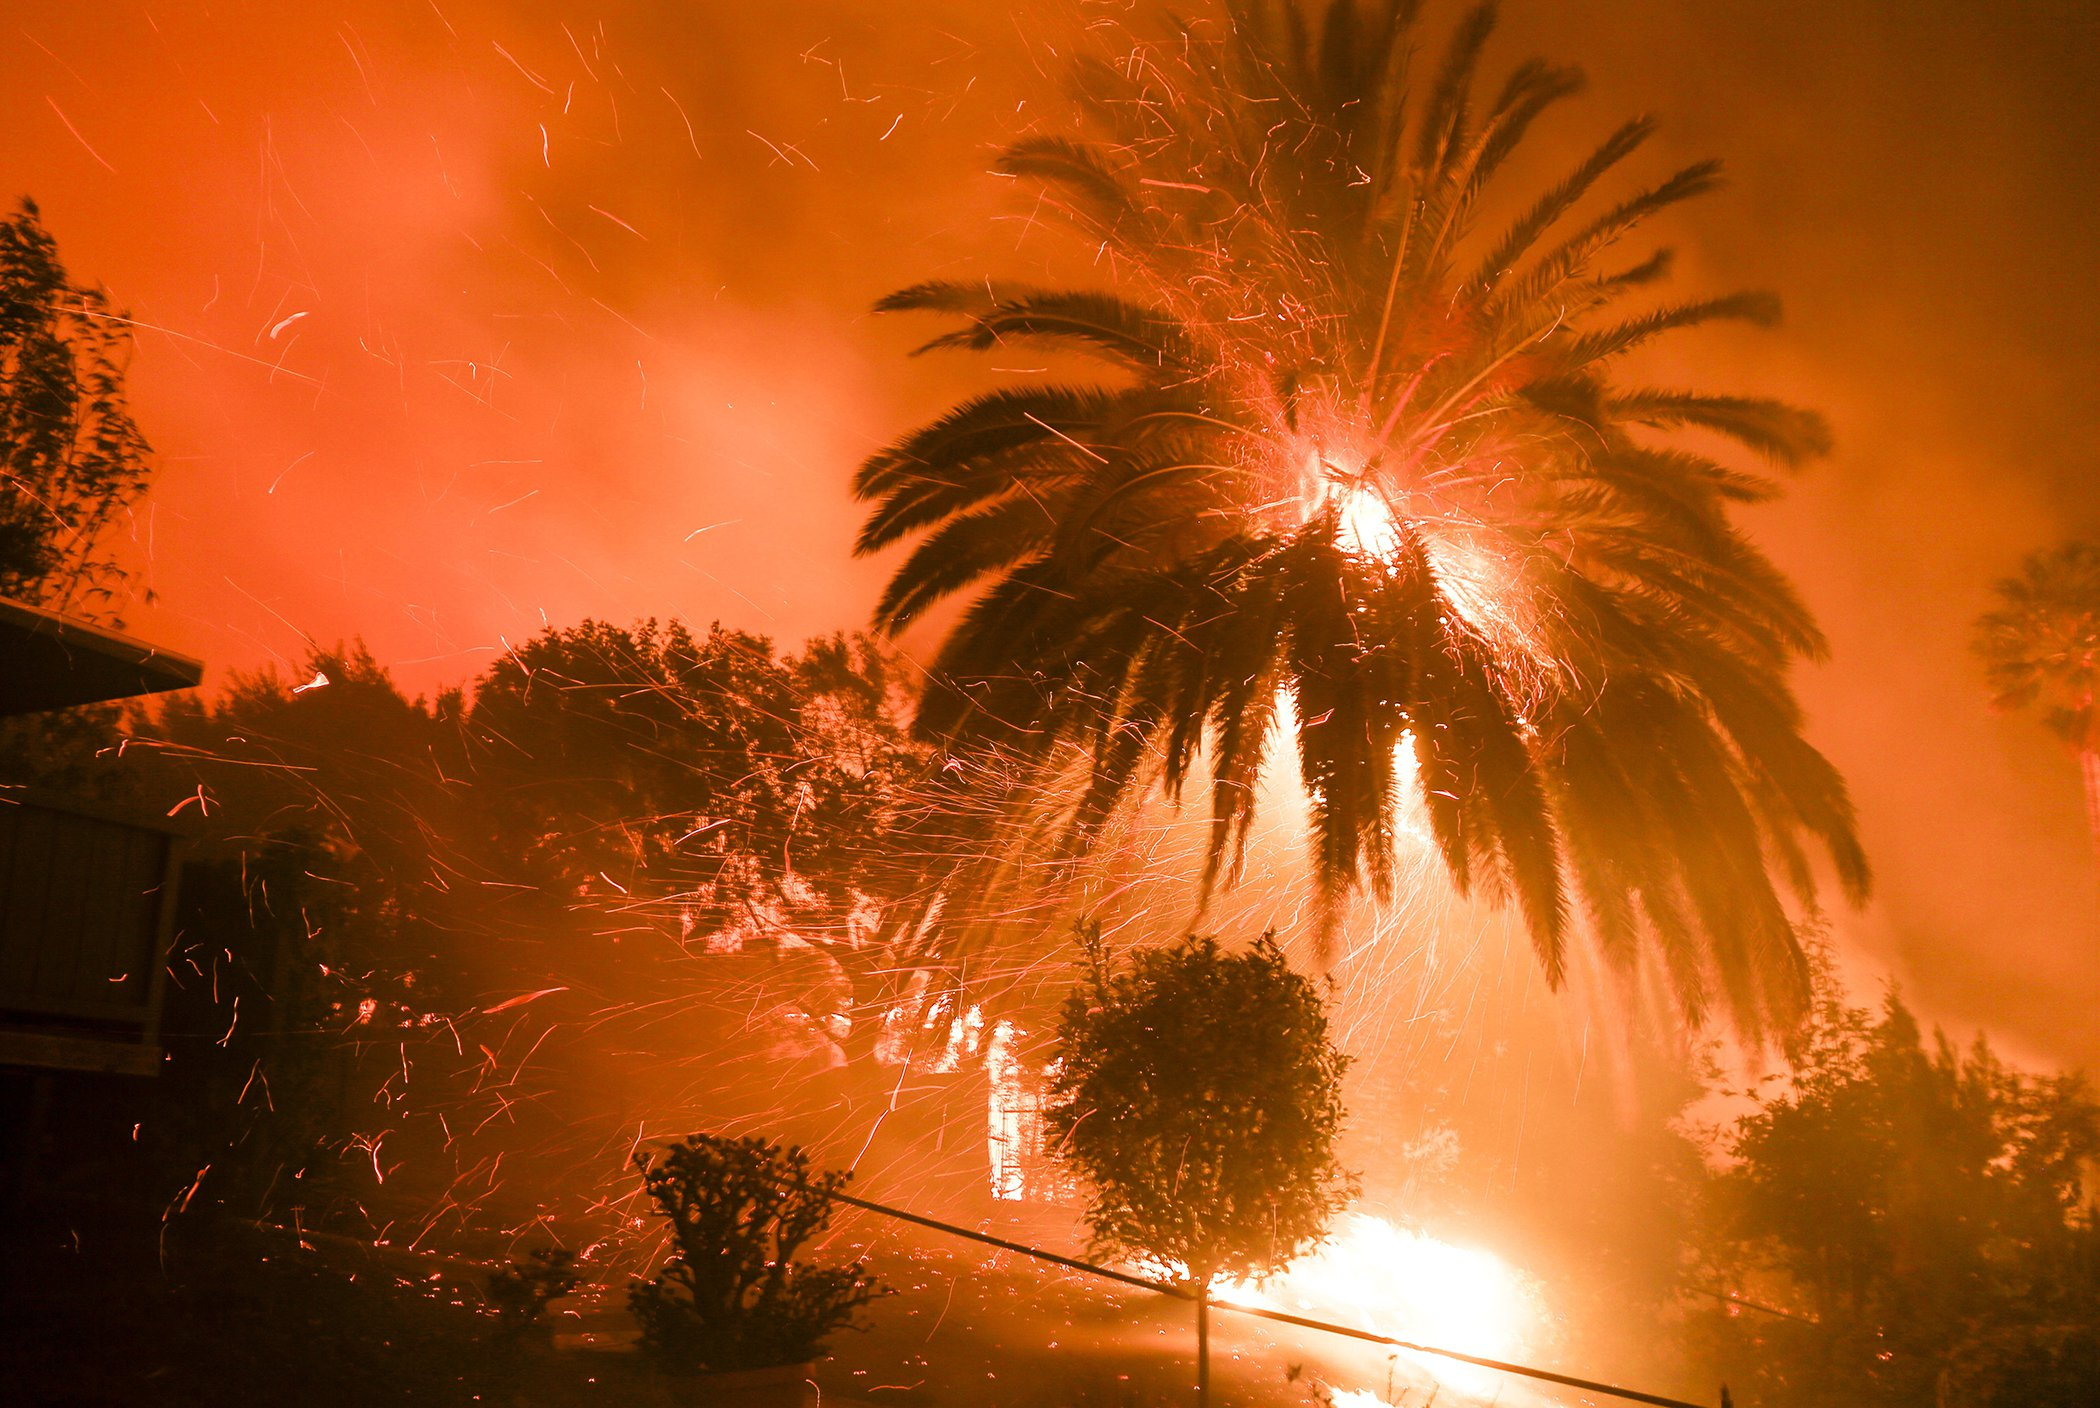 Southern-California-Wildfires-Woolsey-Fire-1.jpg